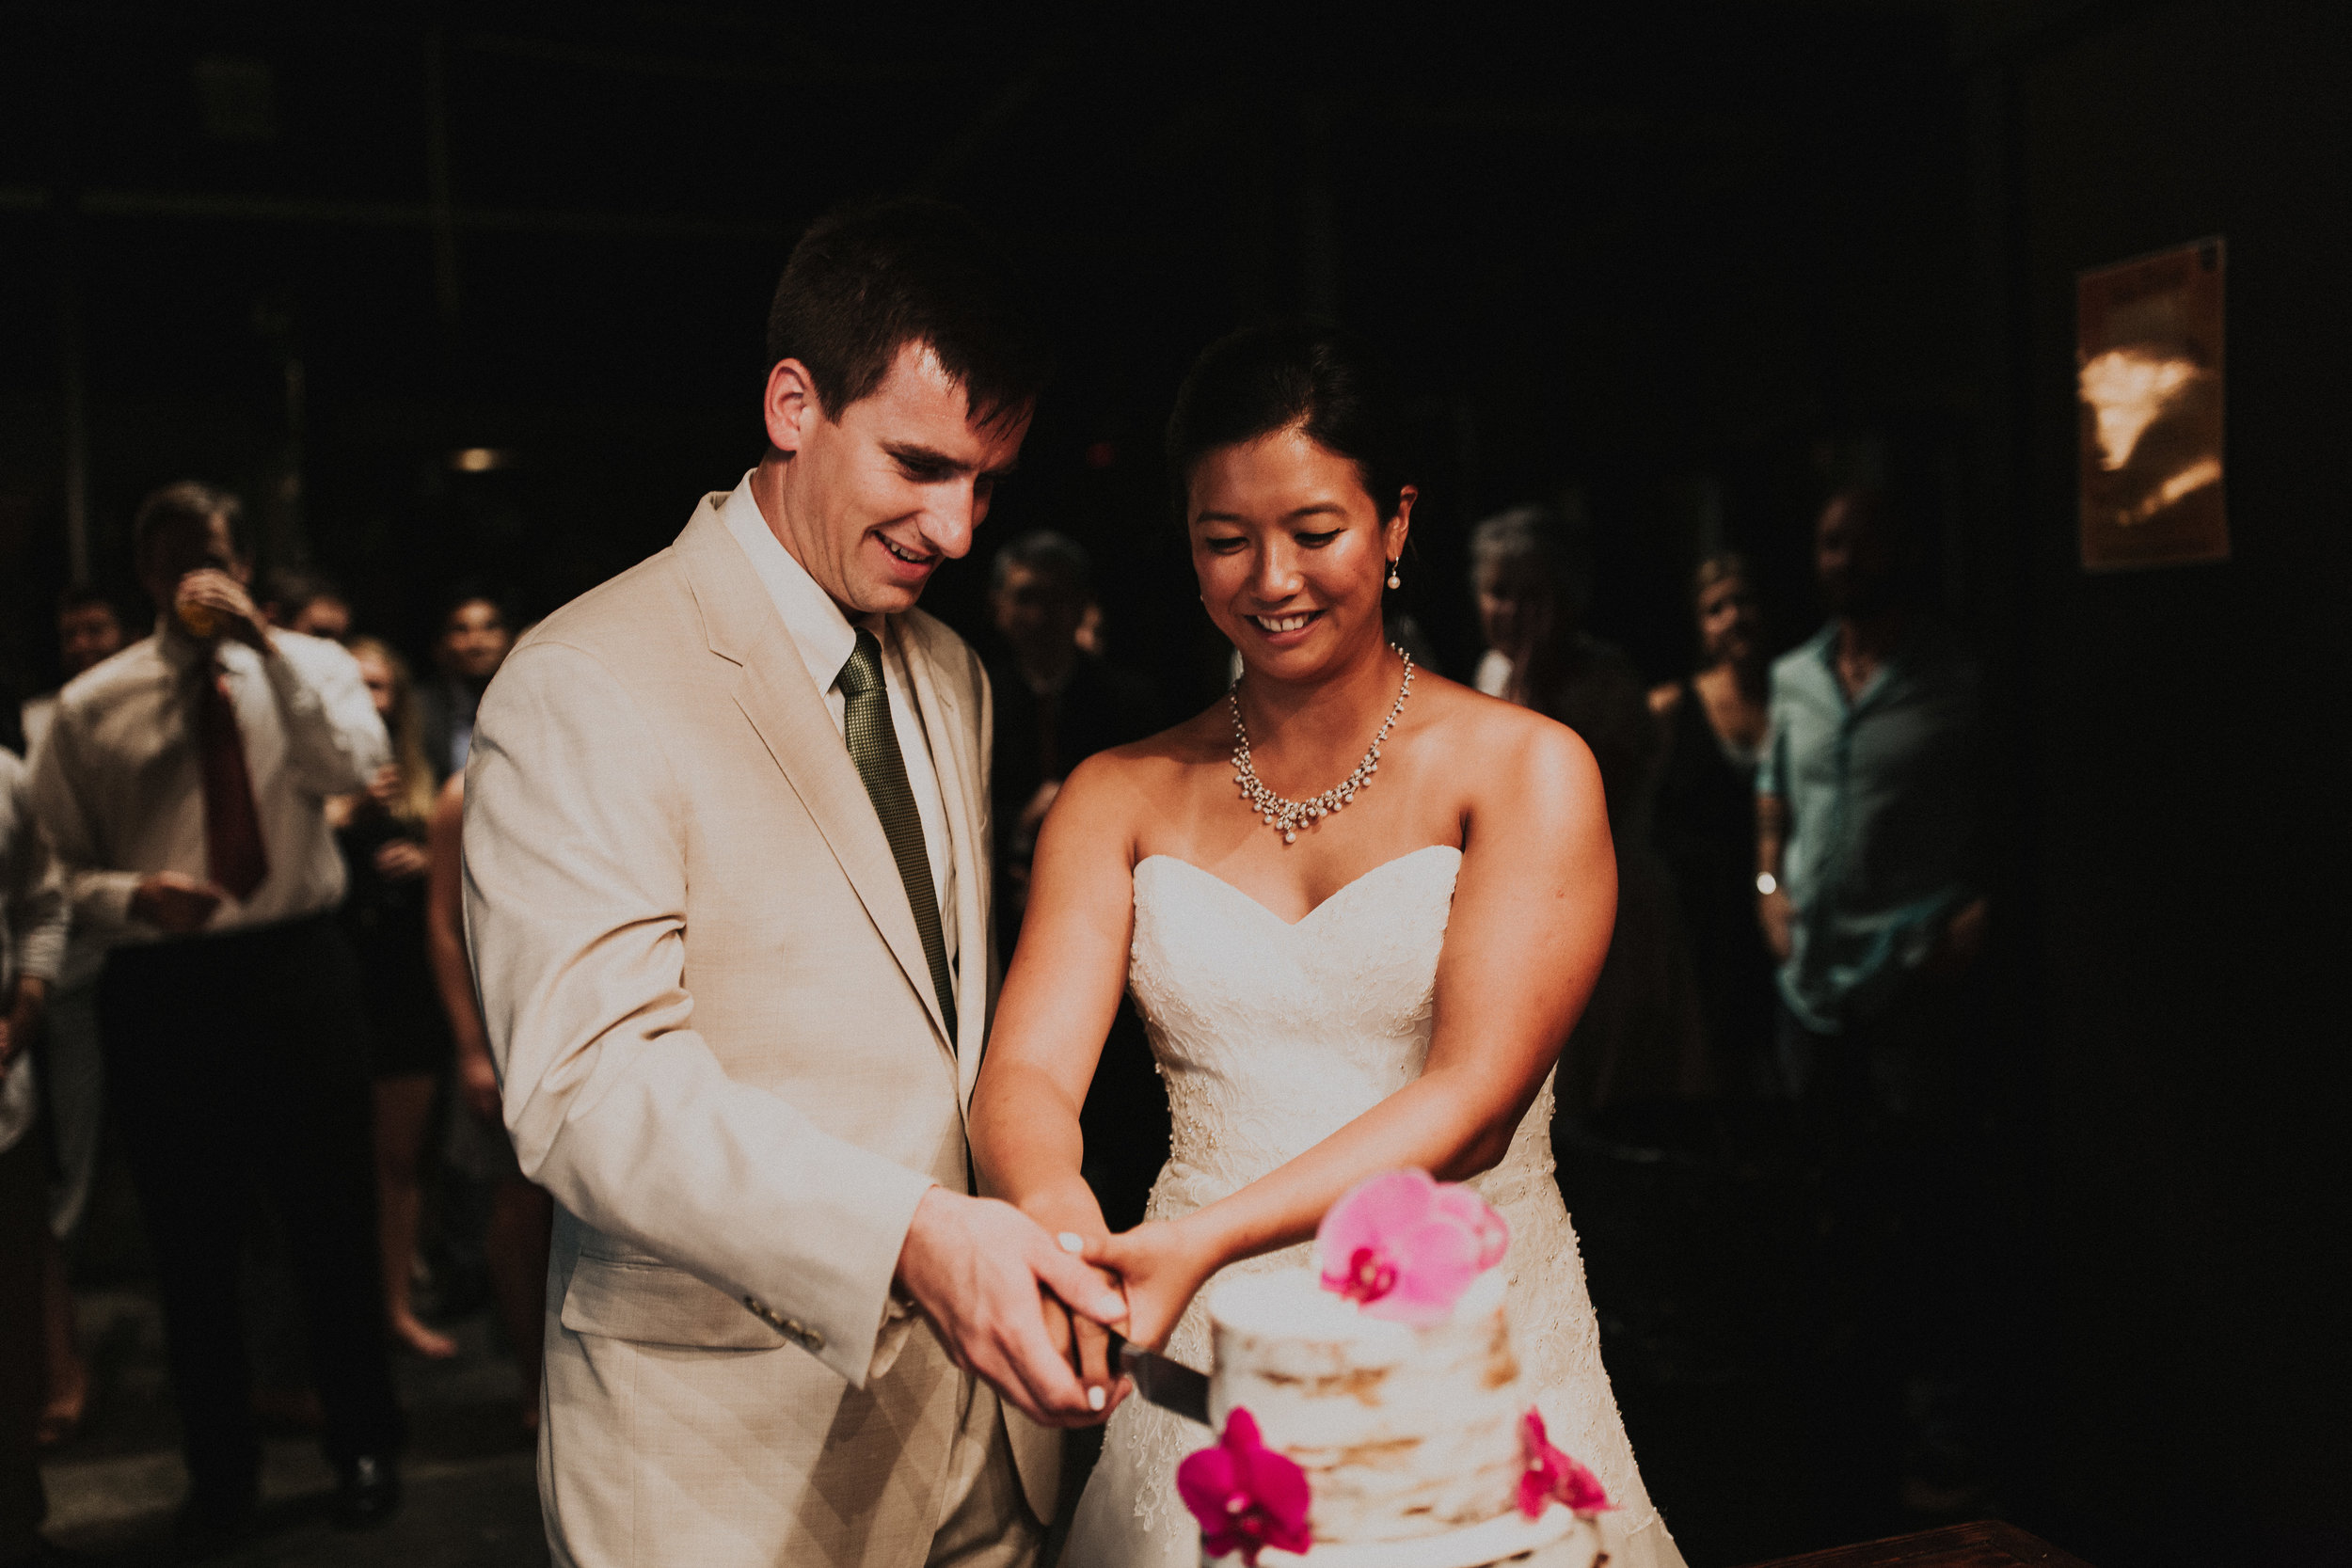 Ching + Michael - Wedding (141 of 150).jpg